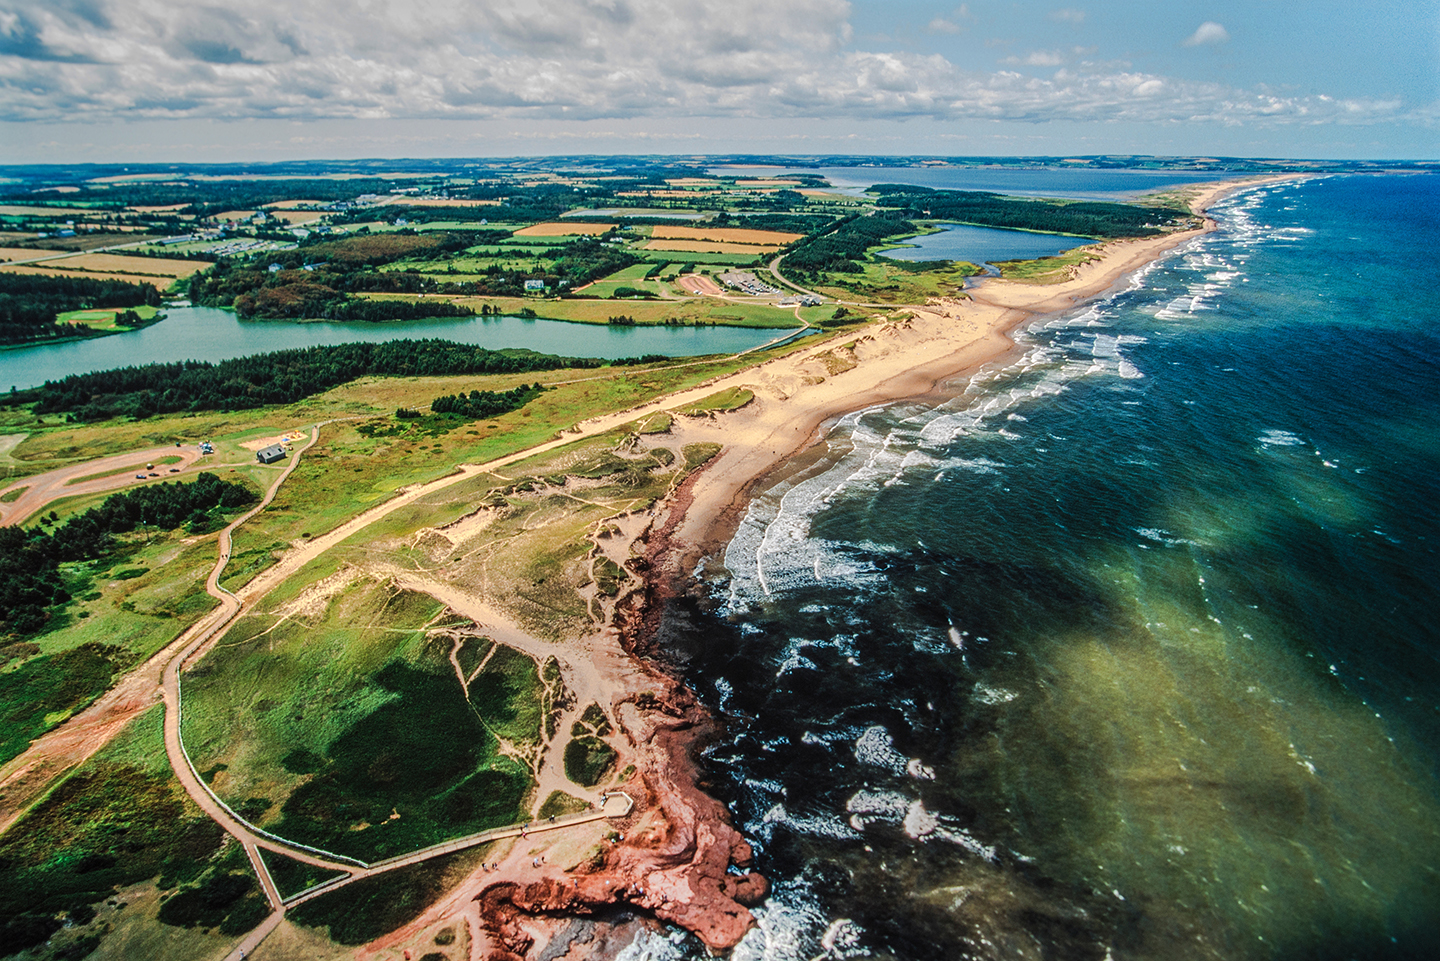 An aerial view of Prince Edward Island, Canada